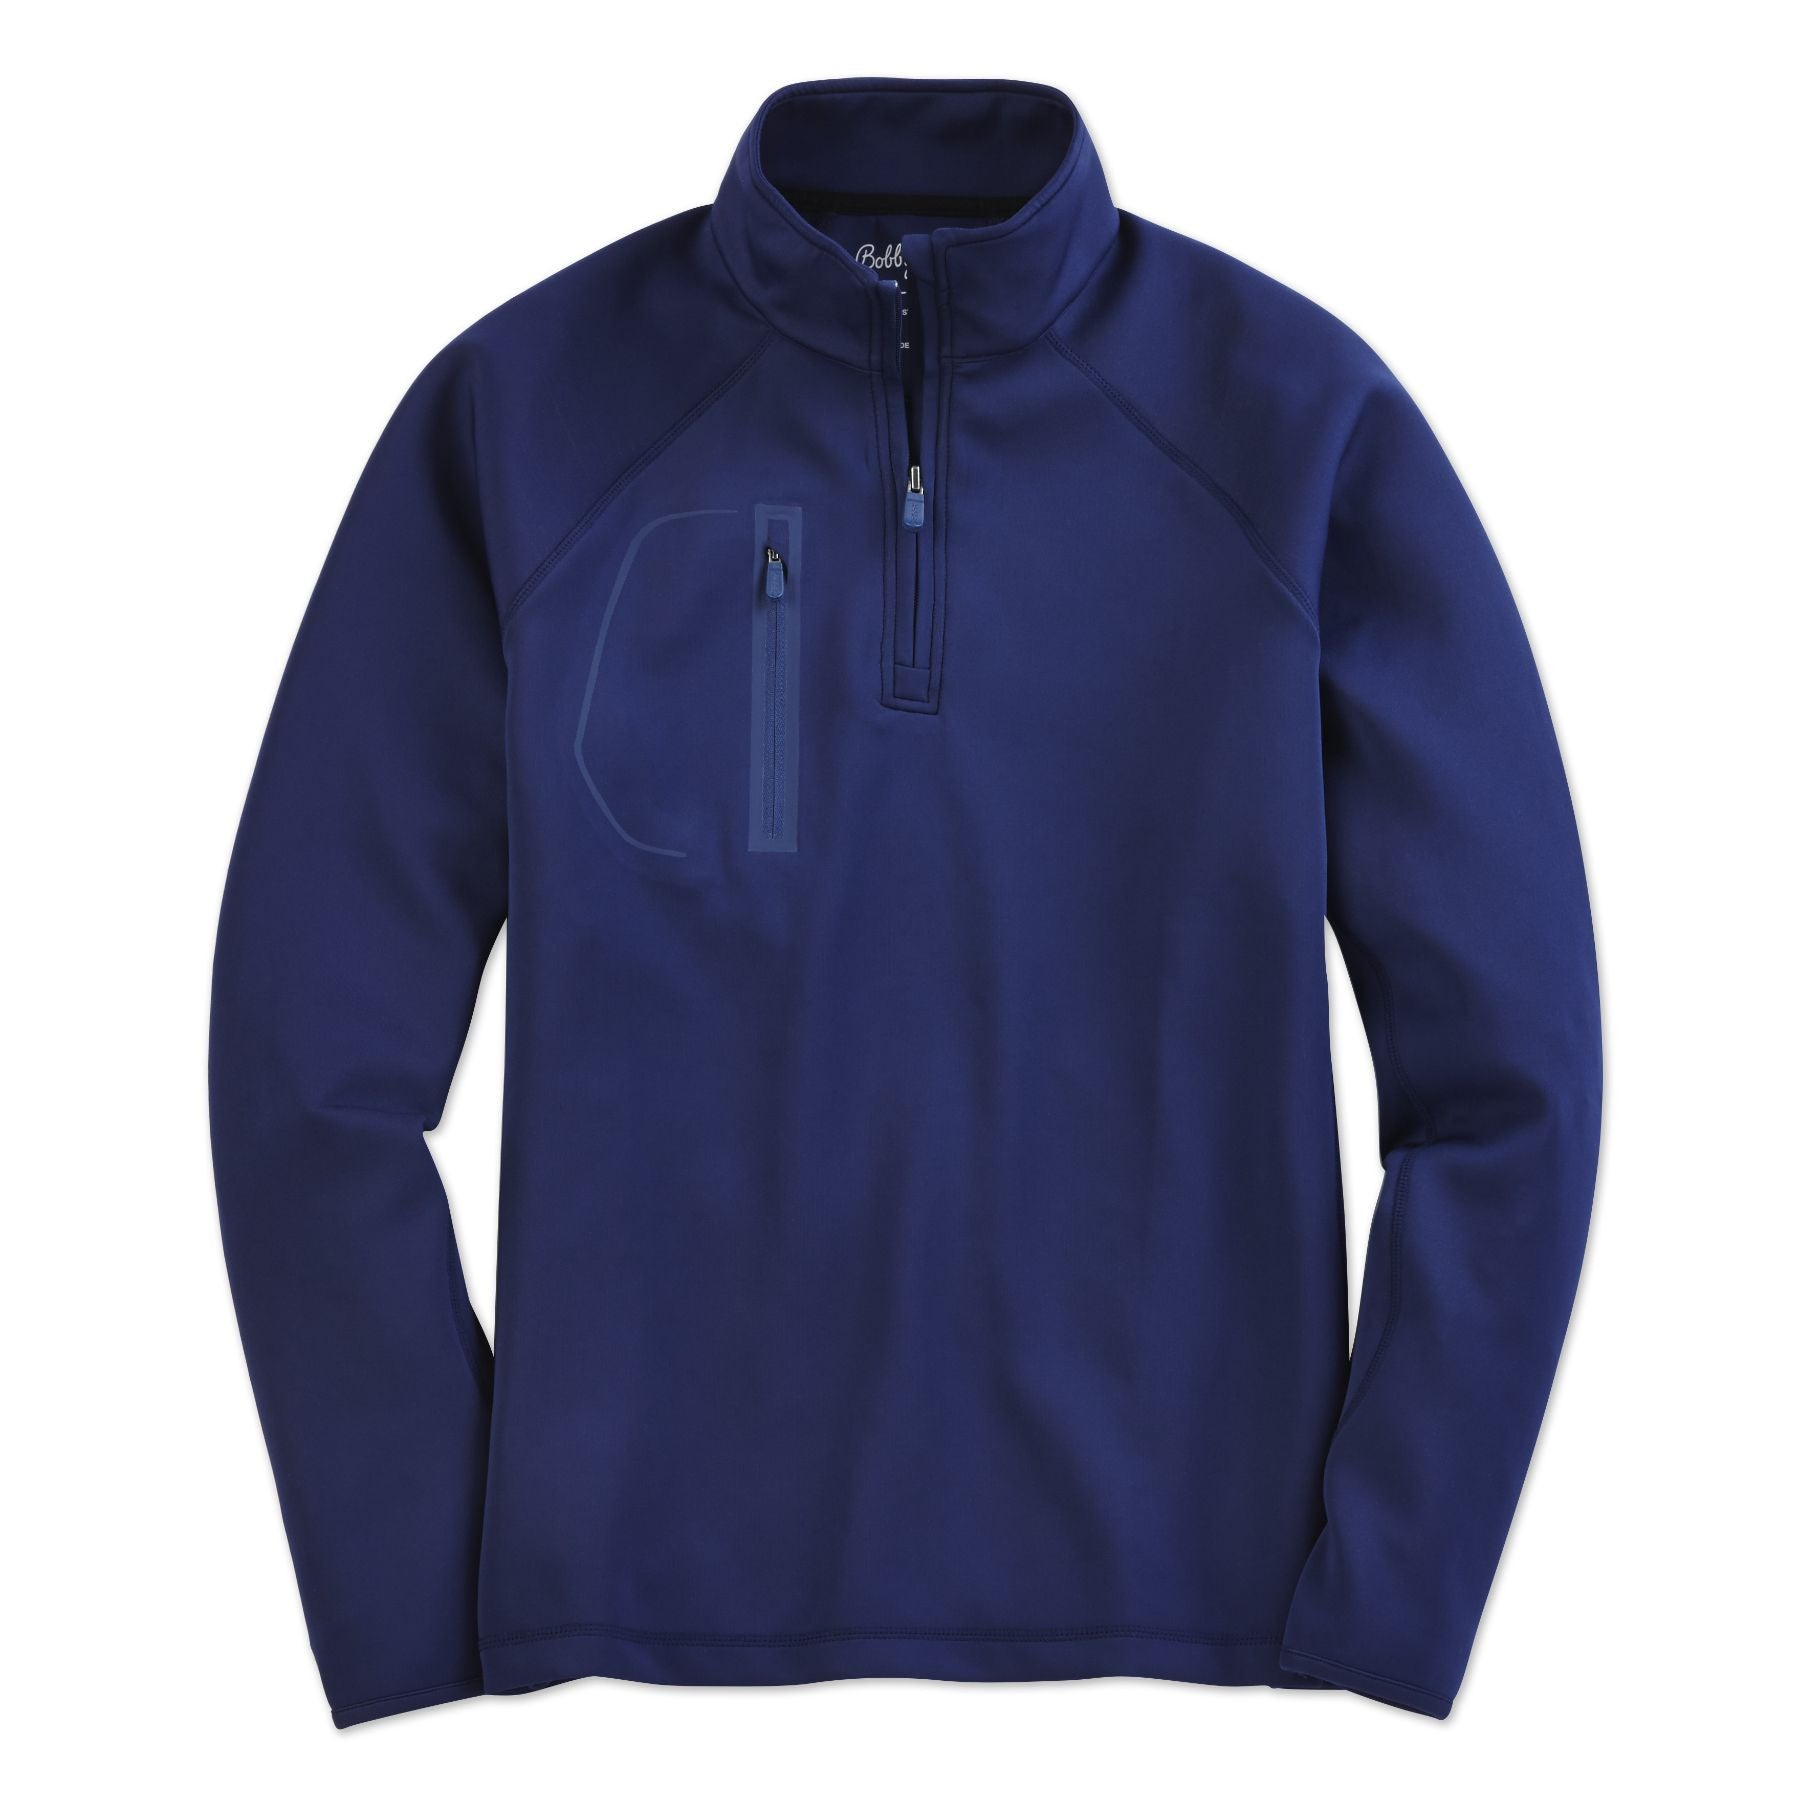 Bobby Jones ¼ Zip Pullover Shirt